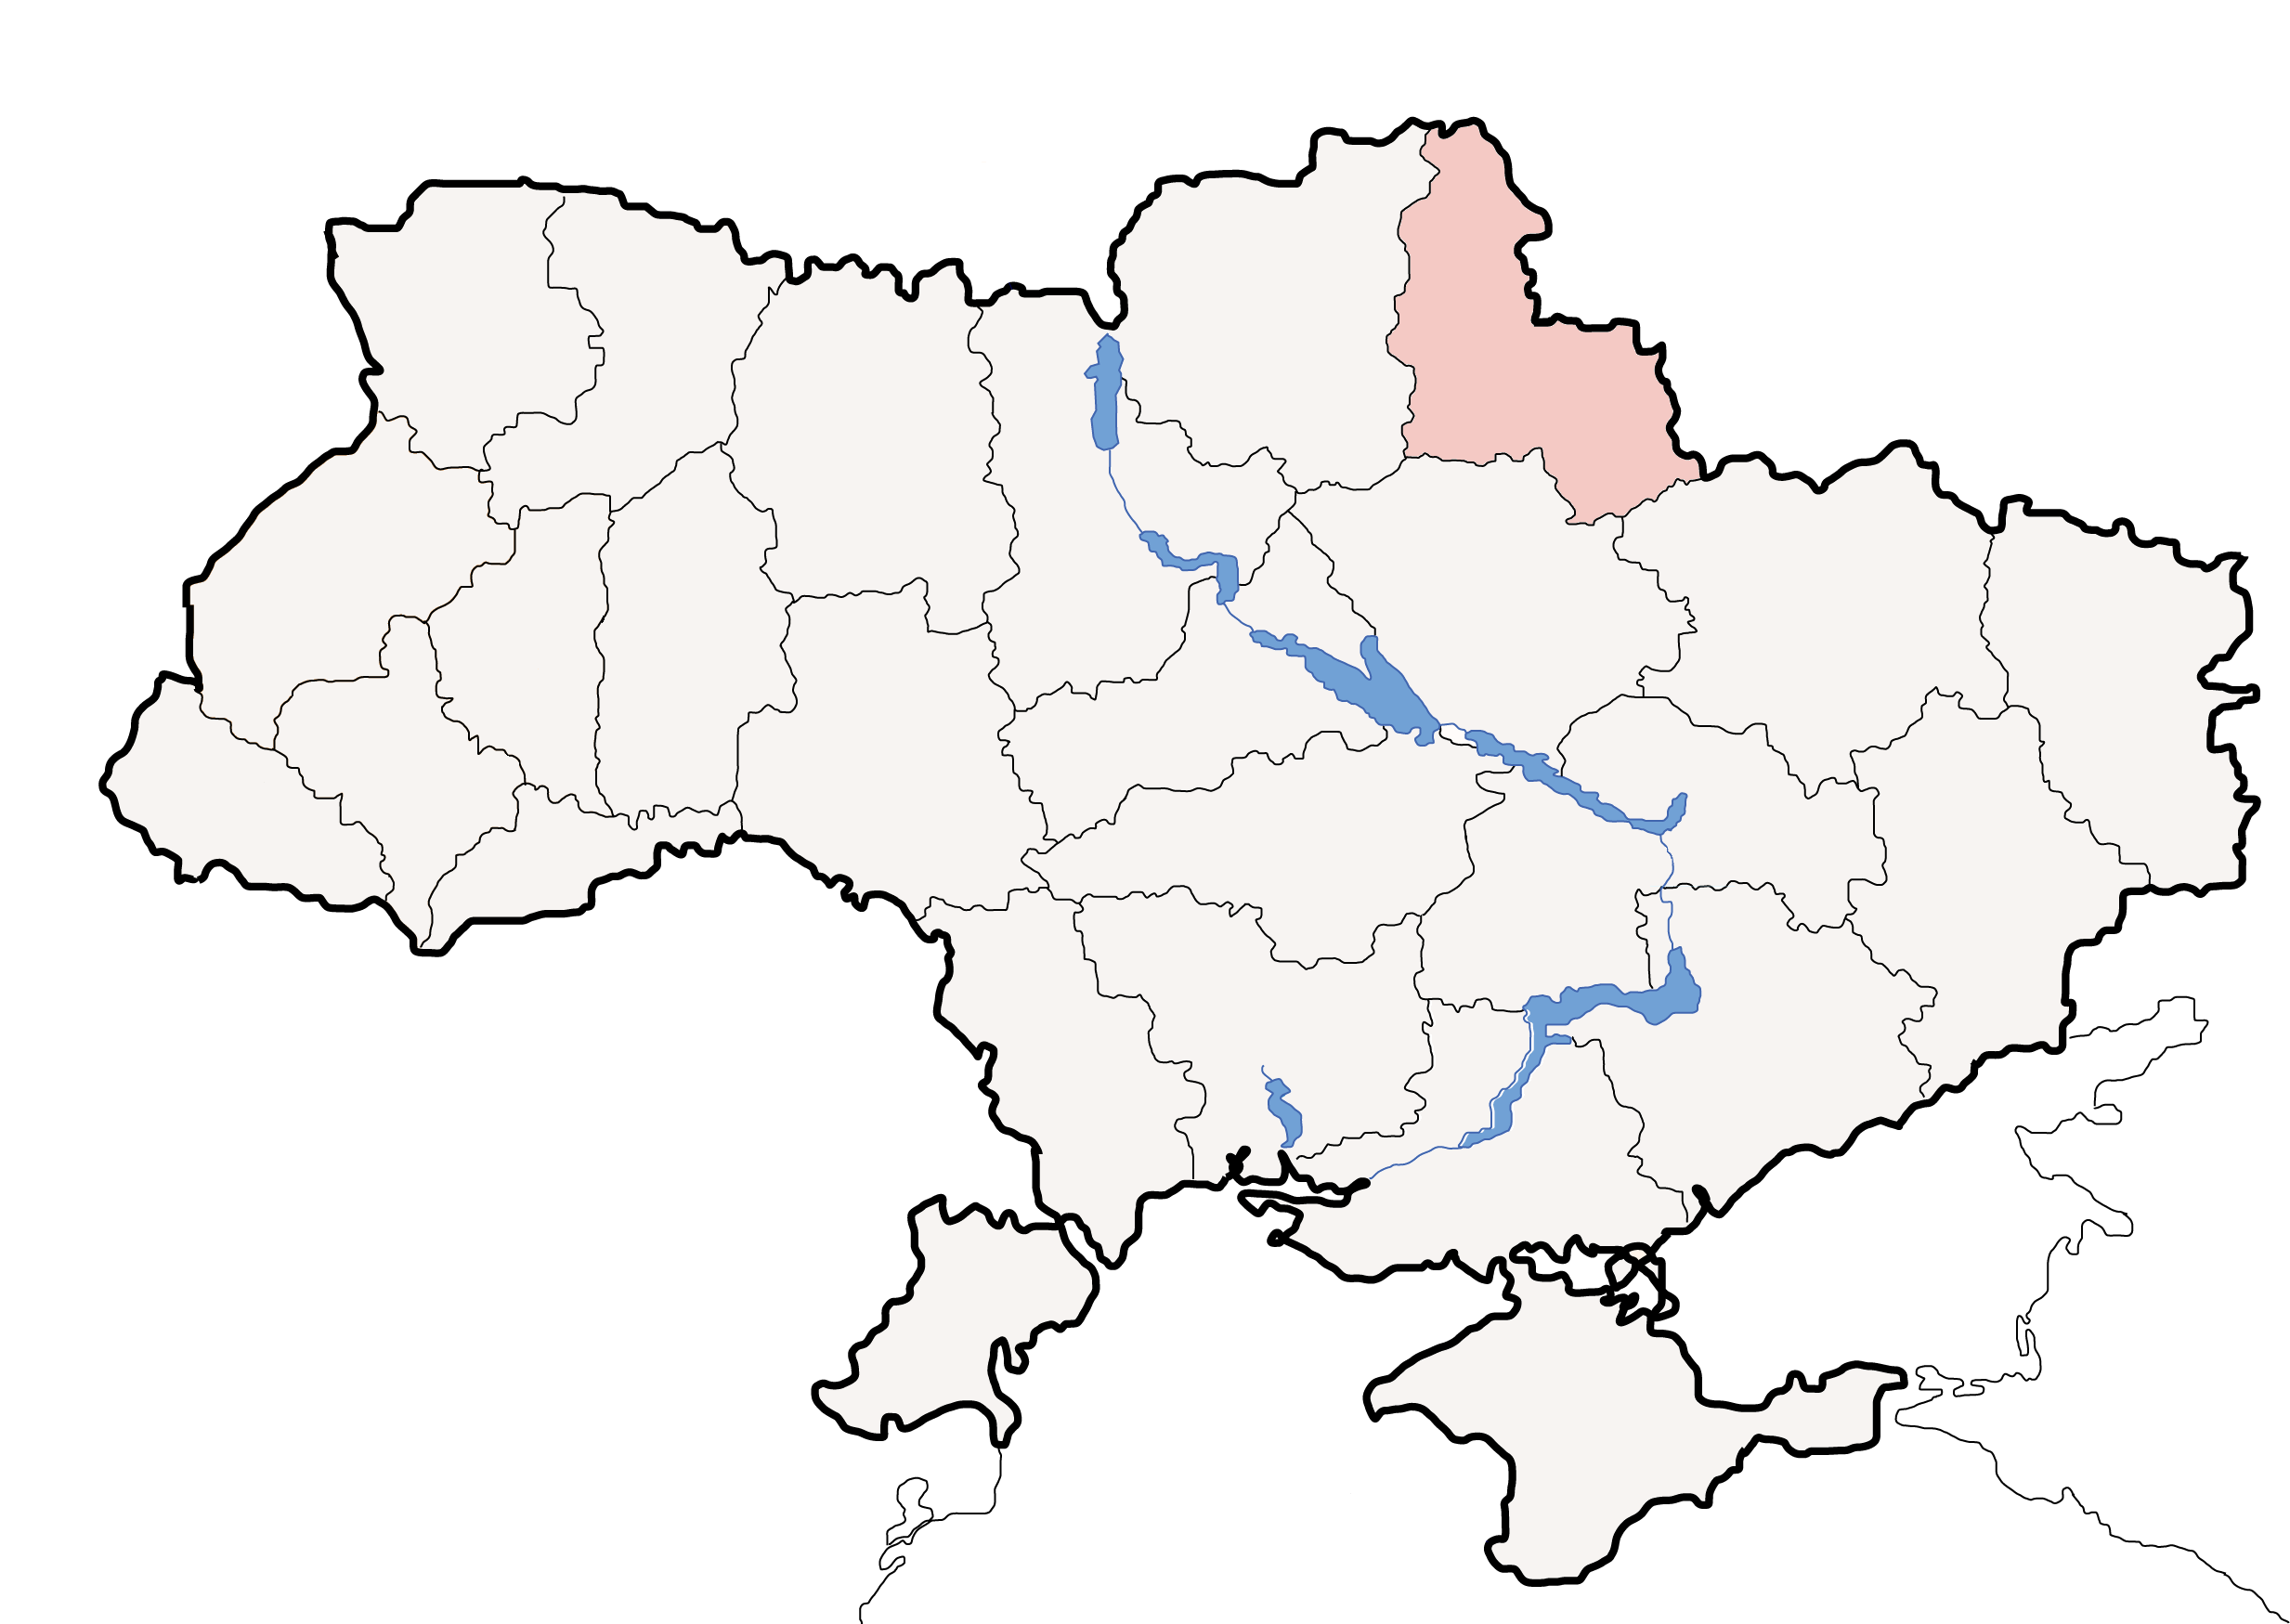 FileMap of Ukraine political simple Oblast Sumypng Wikimedia Commons